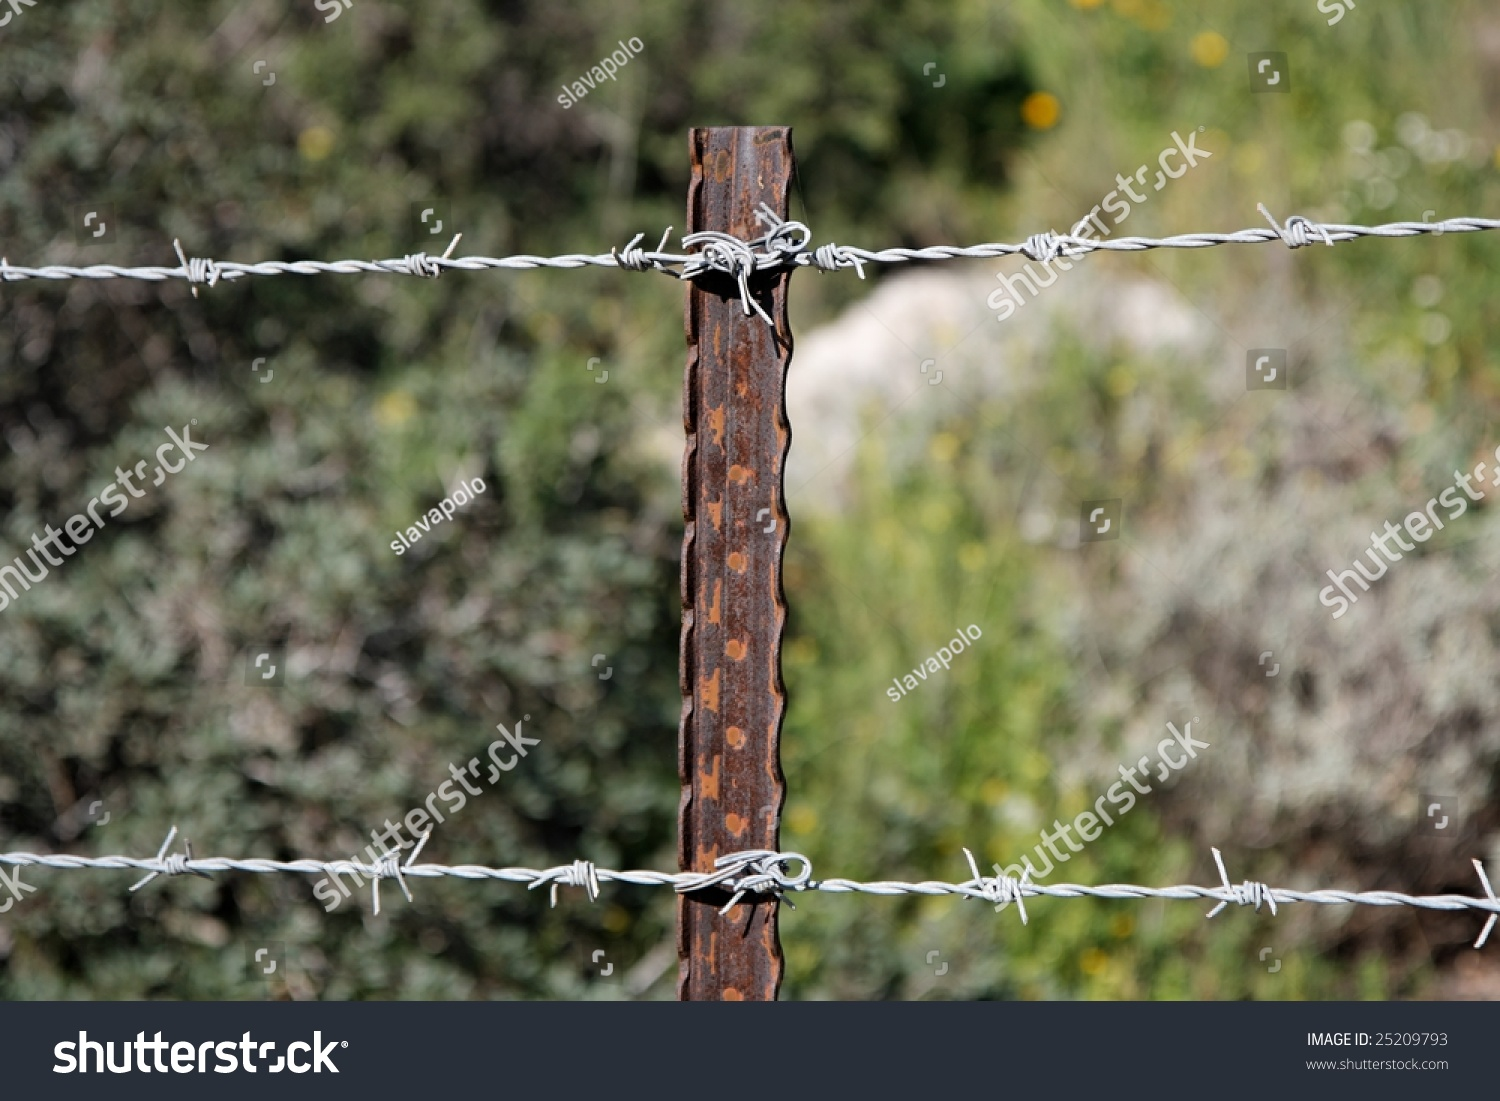 Two Strands Barbed Wire Fence On Stock Photo (Download Now) 25209793 ...